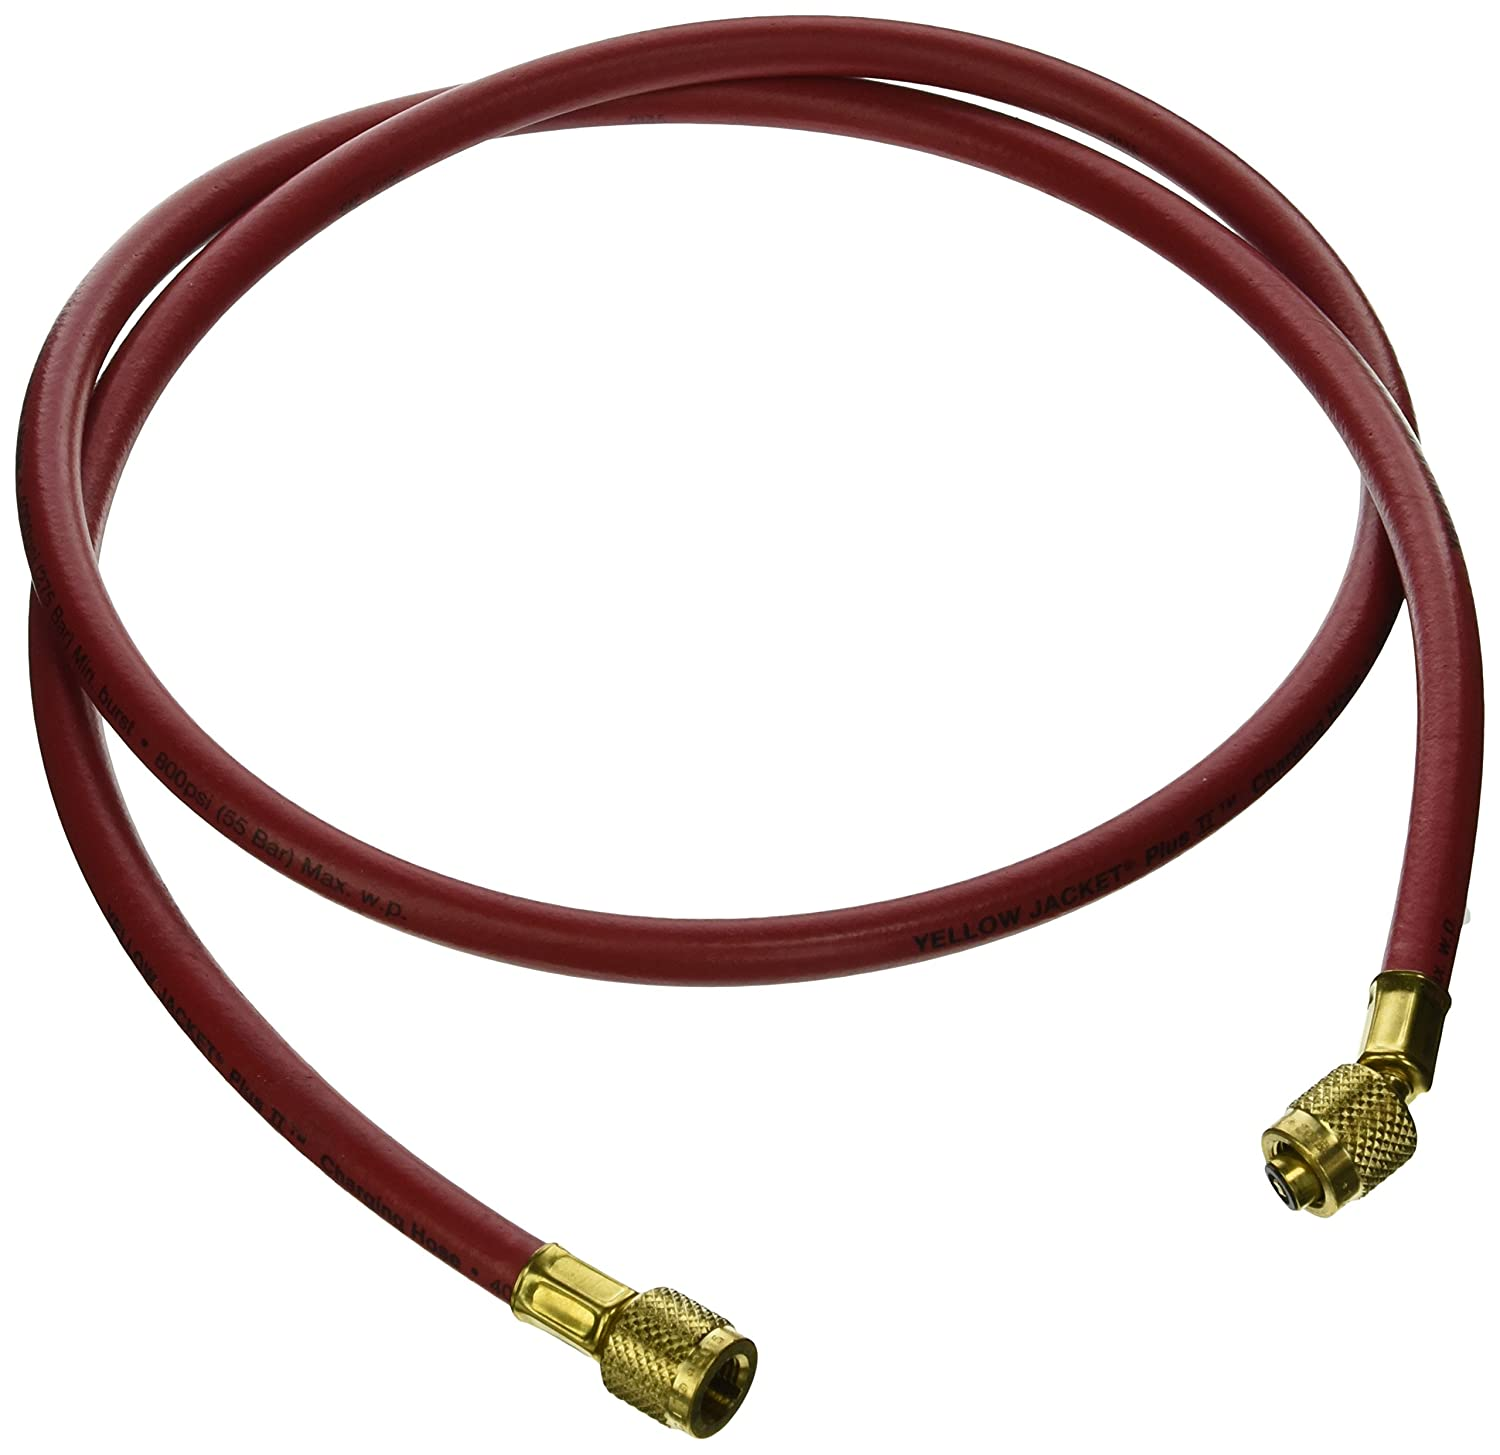 """Yellow Jacket 21465 Plus II Hose with 1/4"""" Female Flare, 60"""", Red: Multiroom Air Conditioners: Industrial & Scientific"""